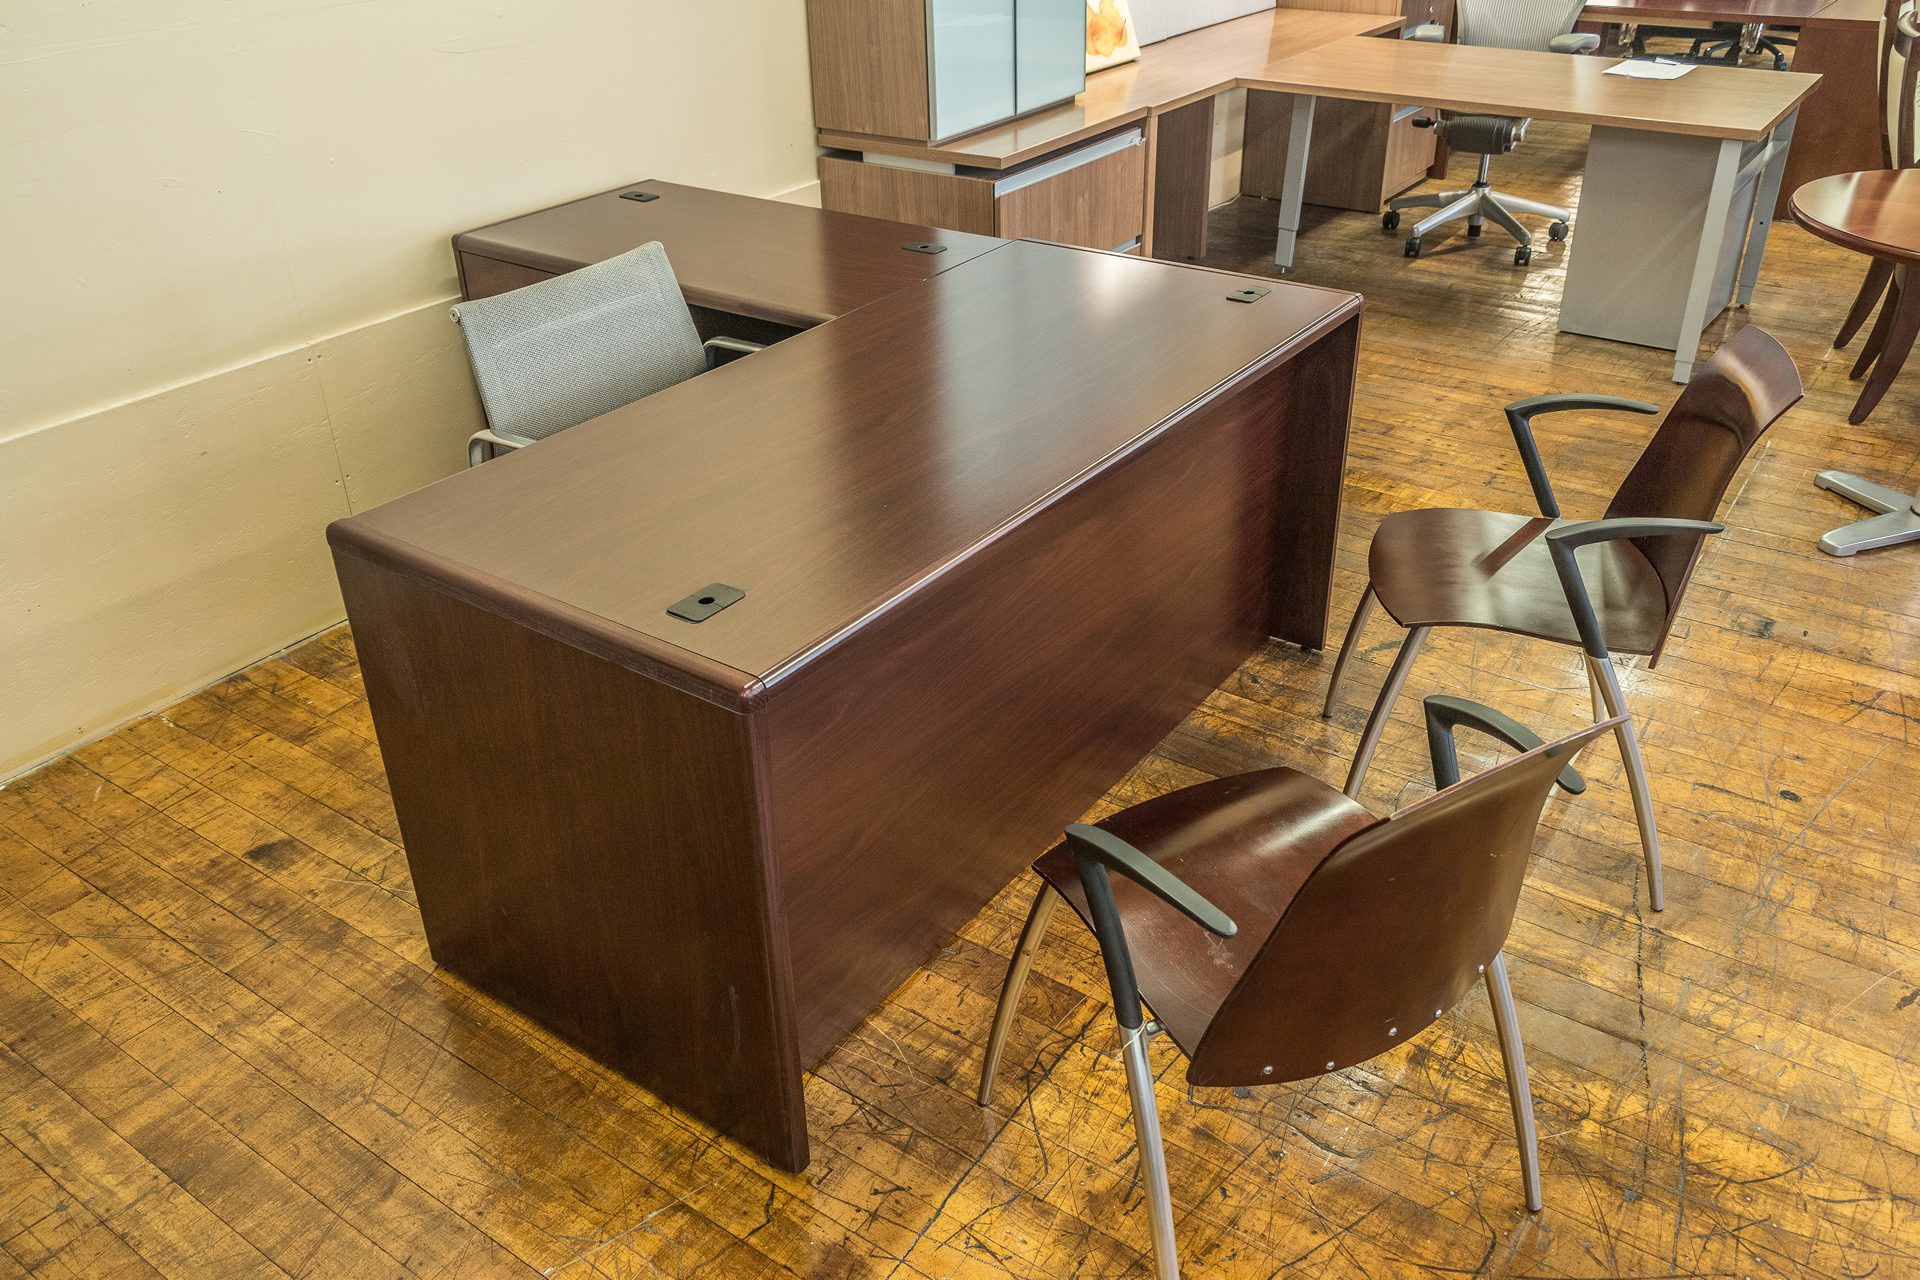 peartreeofficefurniture_peartreeofficefurniture_peartreeofficefurniture_hon-cherry-laminate-l-desks-3.jpg